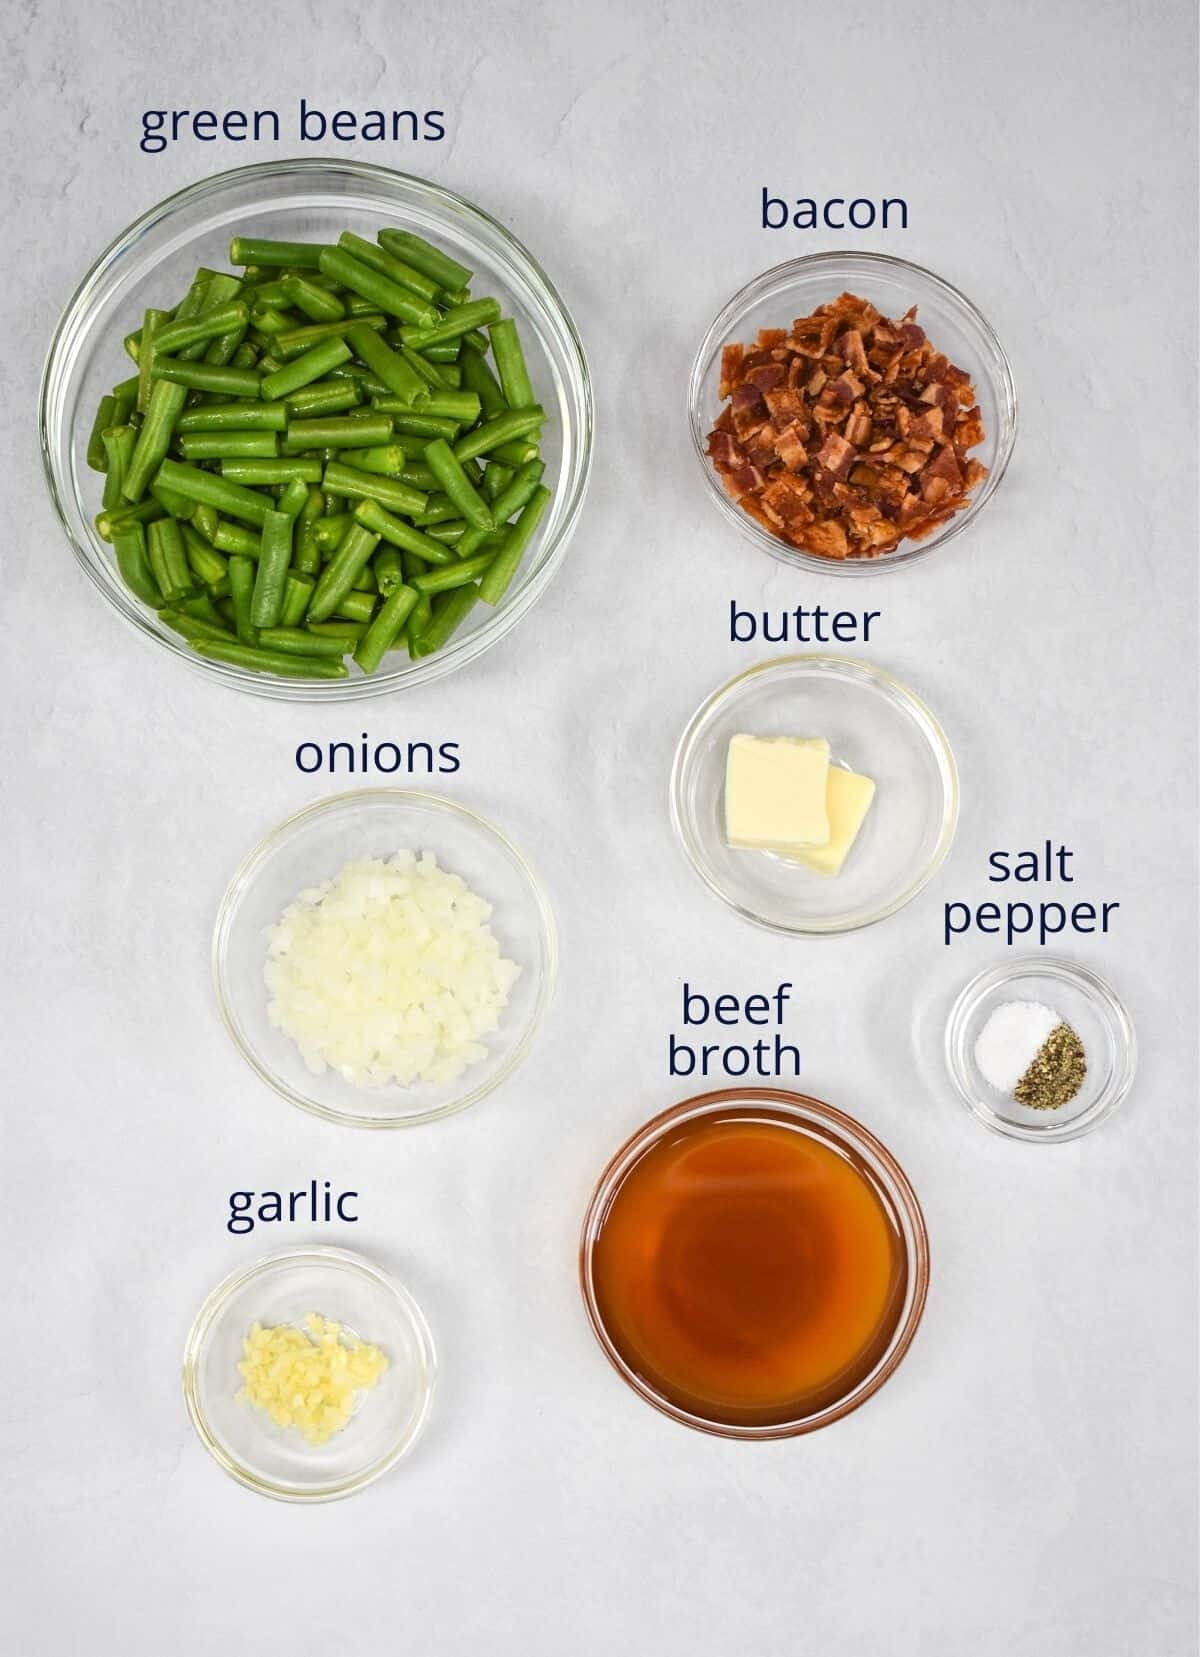 The ingredients for the side dish arranged in glass bowls on a white table. Each ingredient has a small label with the name on top.